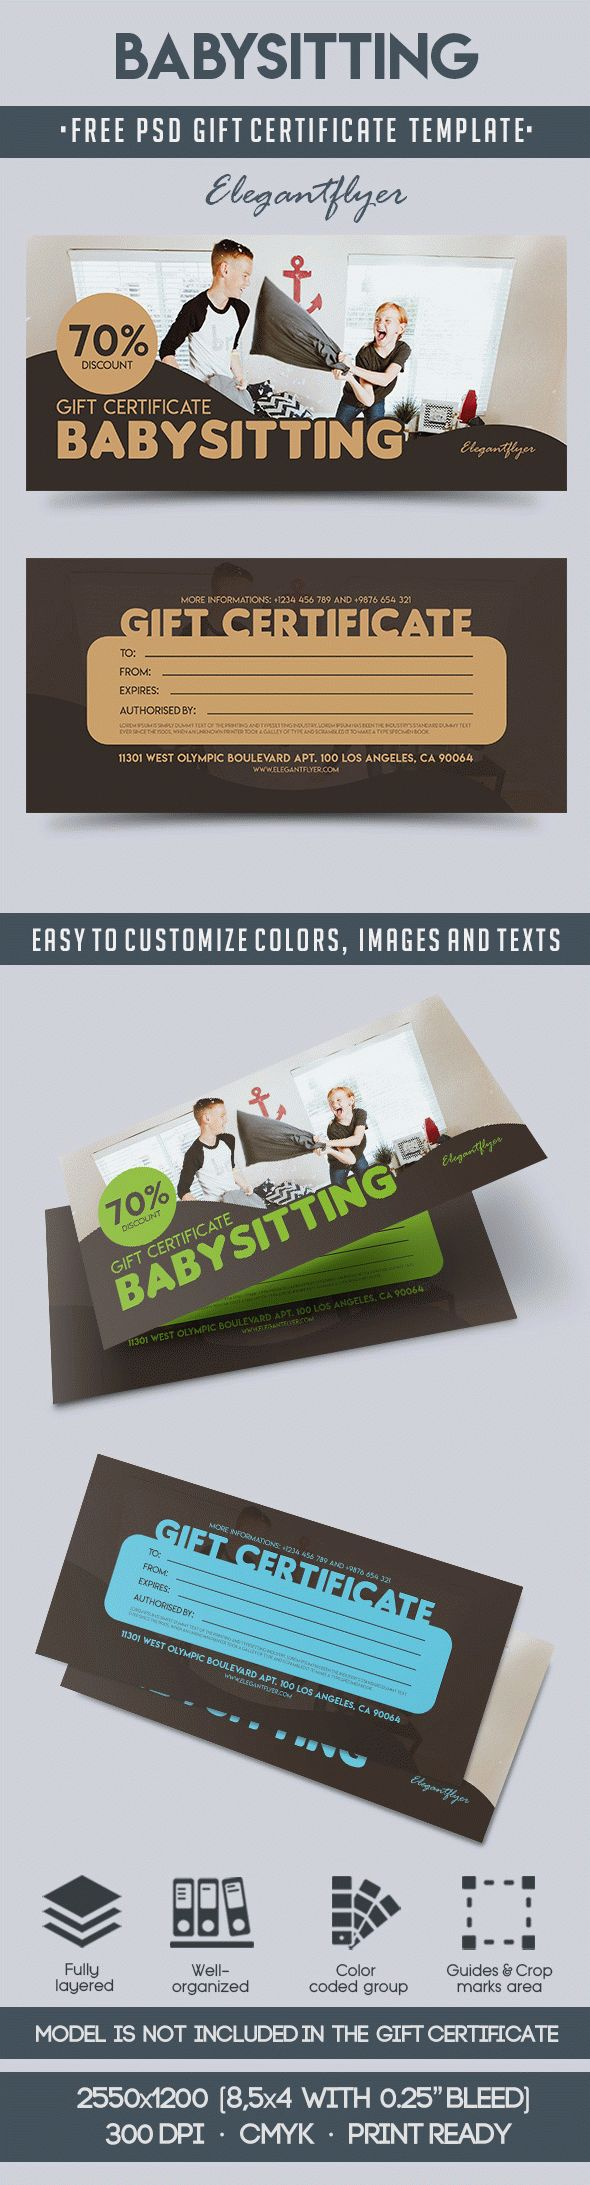 Babysitting free gift certificate psd template by for Babysitting gift certificate template